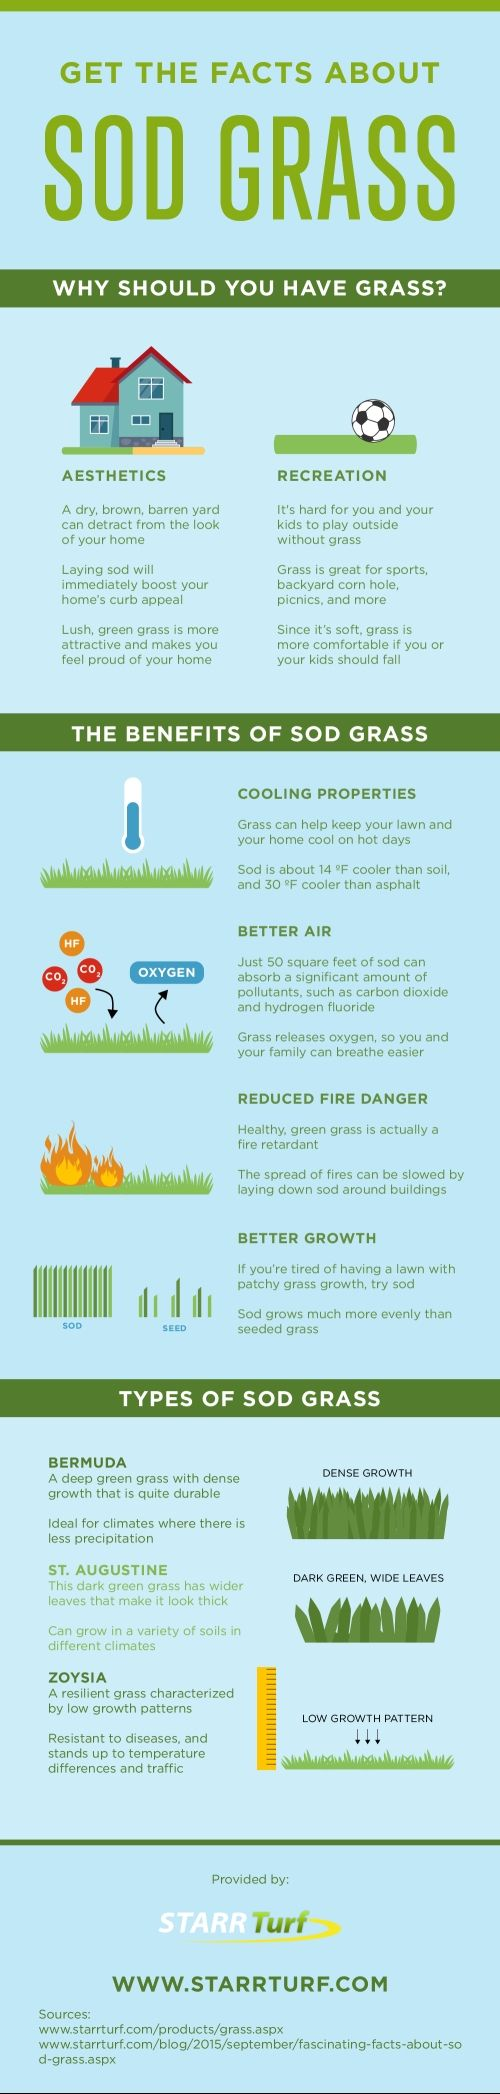 25 best ideas about sod grass on pinterest lawn soil lawn and